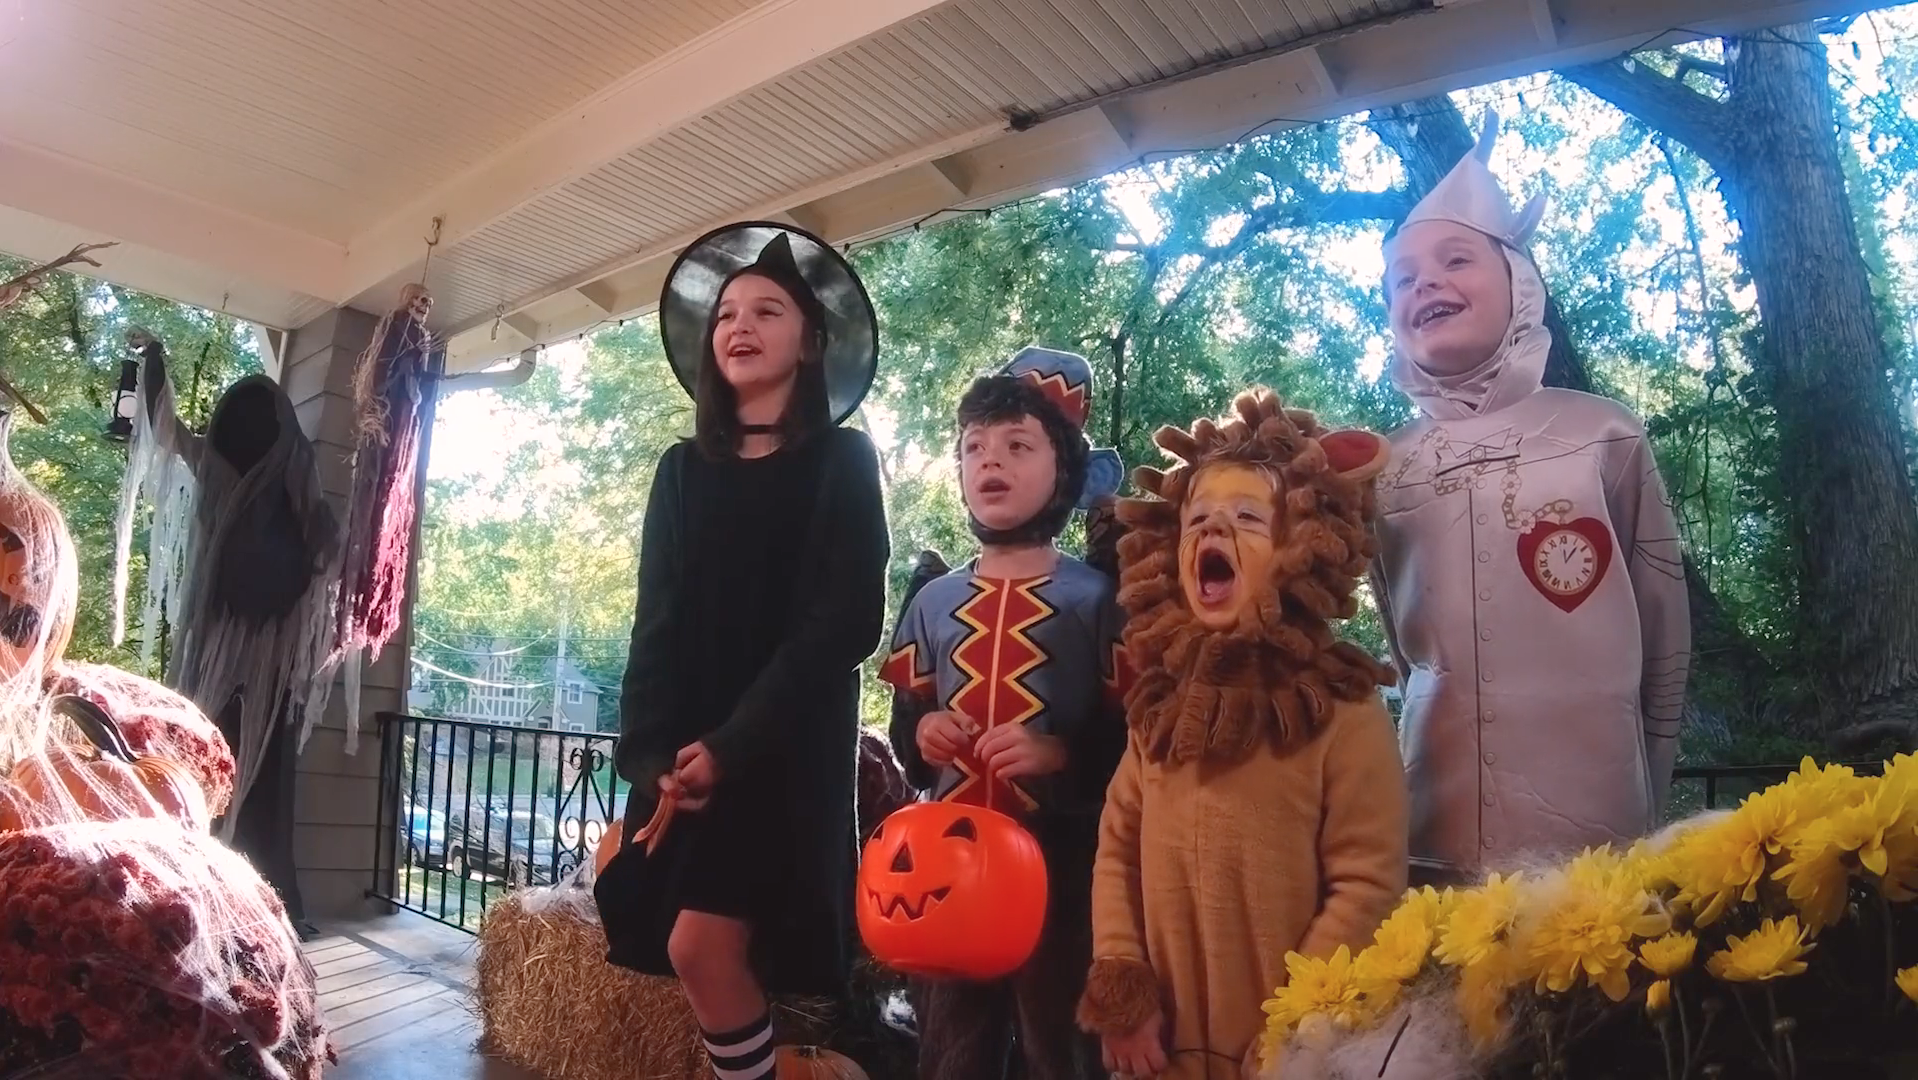 kids experience the gender pay gap first-hand when trick-or-treating